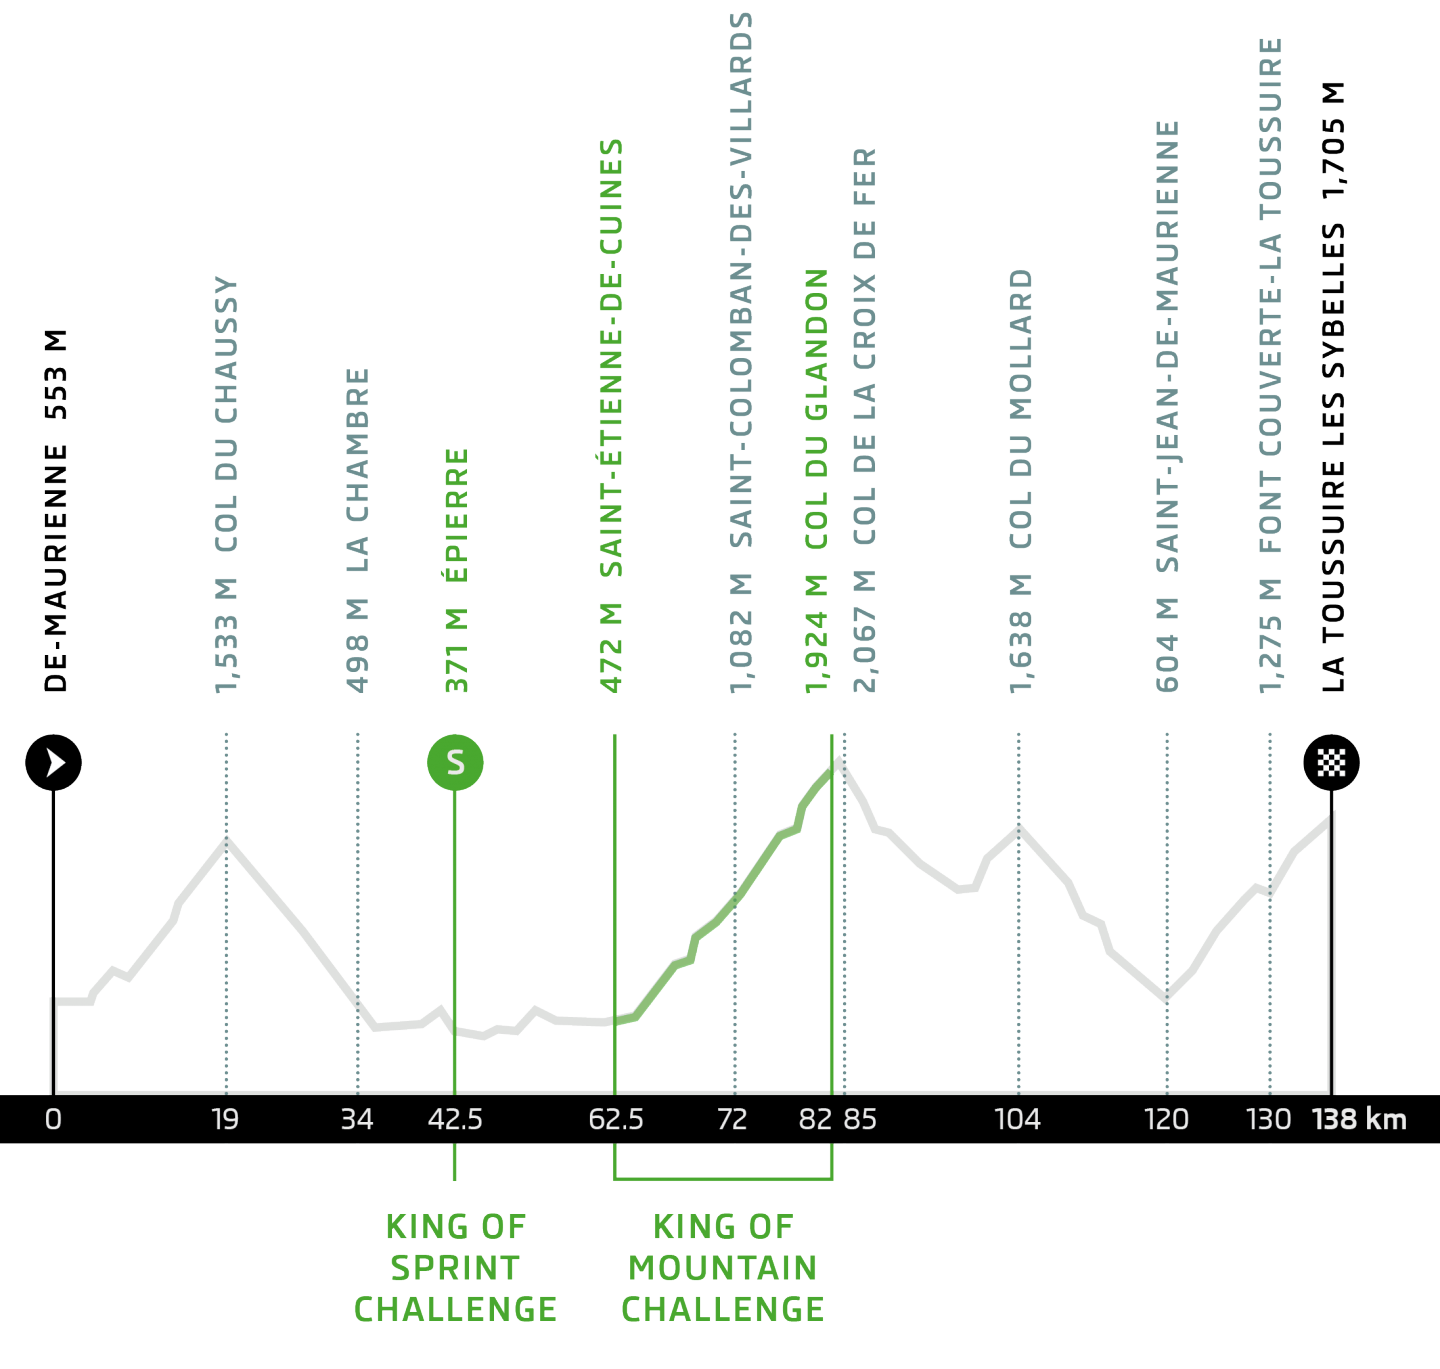 etape_du_tour_heigt_profile_2015_EN